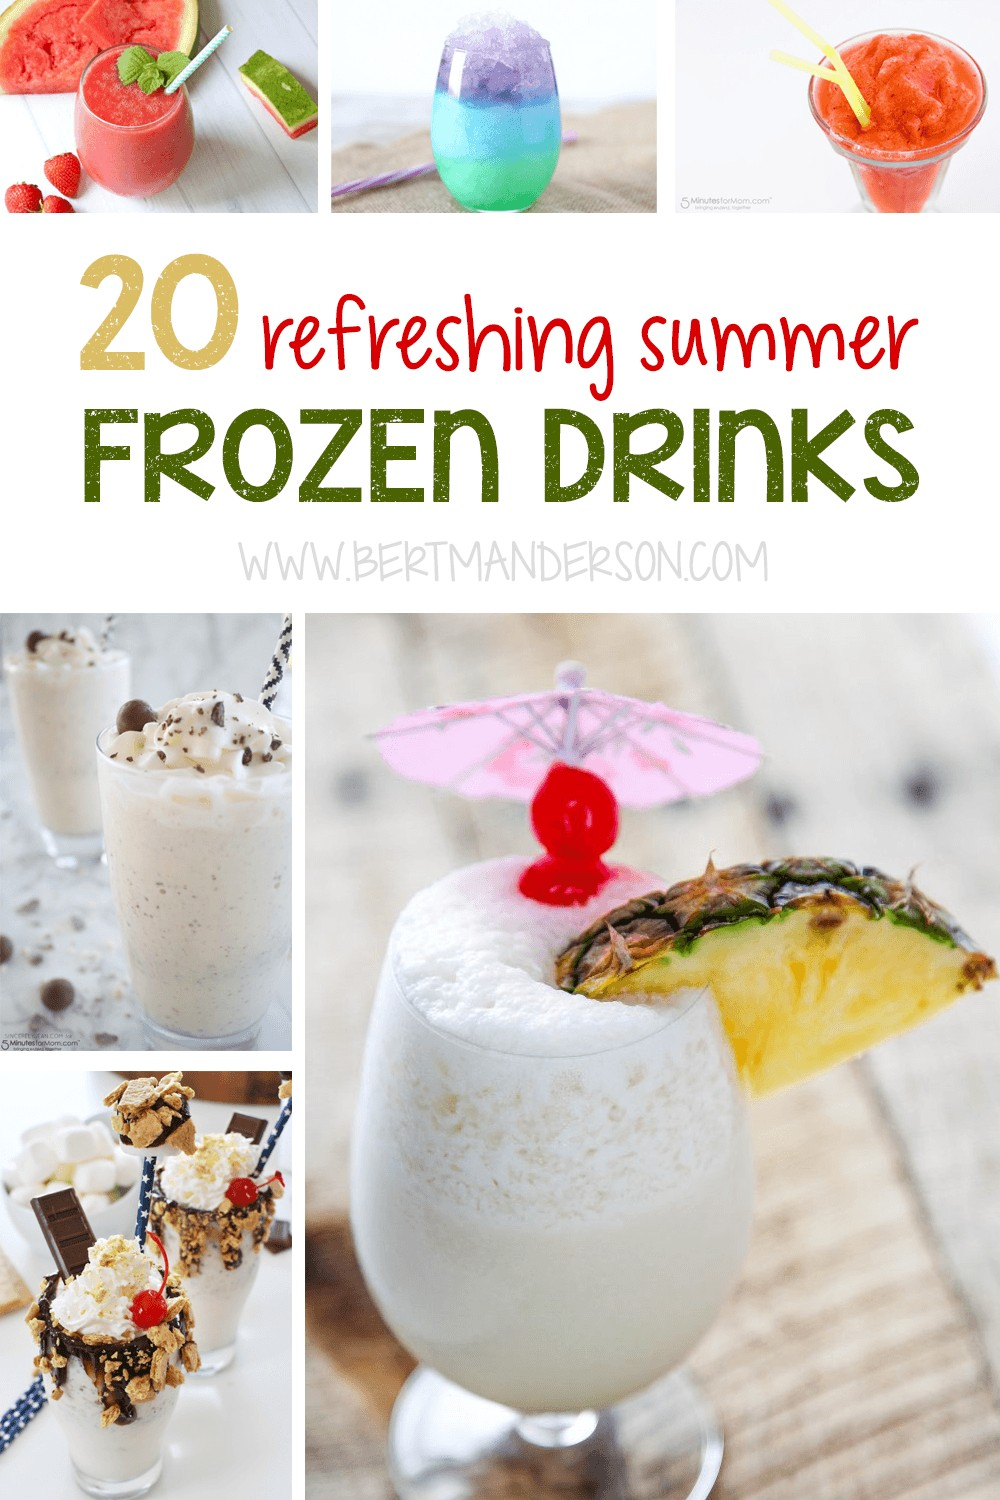 20 refreshing summer frozen drinks for adults and kids. Plus, a guide on how to add liquor to any frozen drink based on the flavor profile. #frozendrinks #cocktails #nonalcoholic #alcoholic